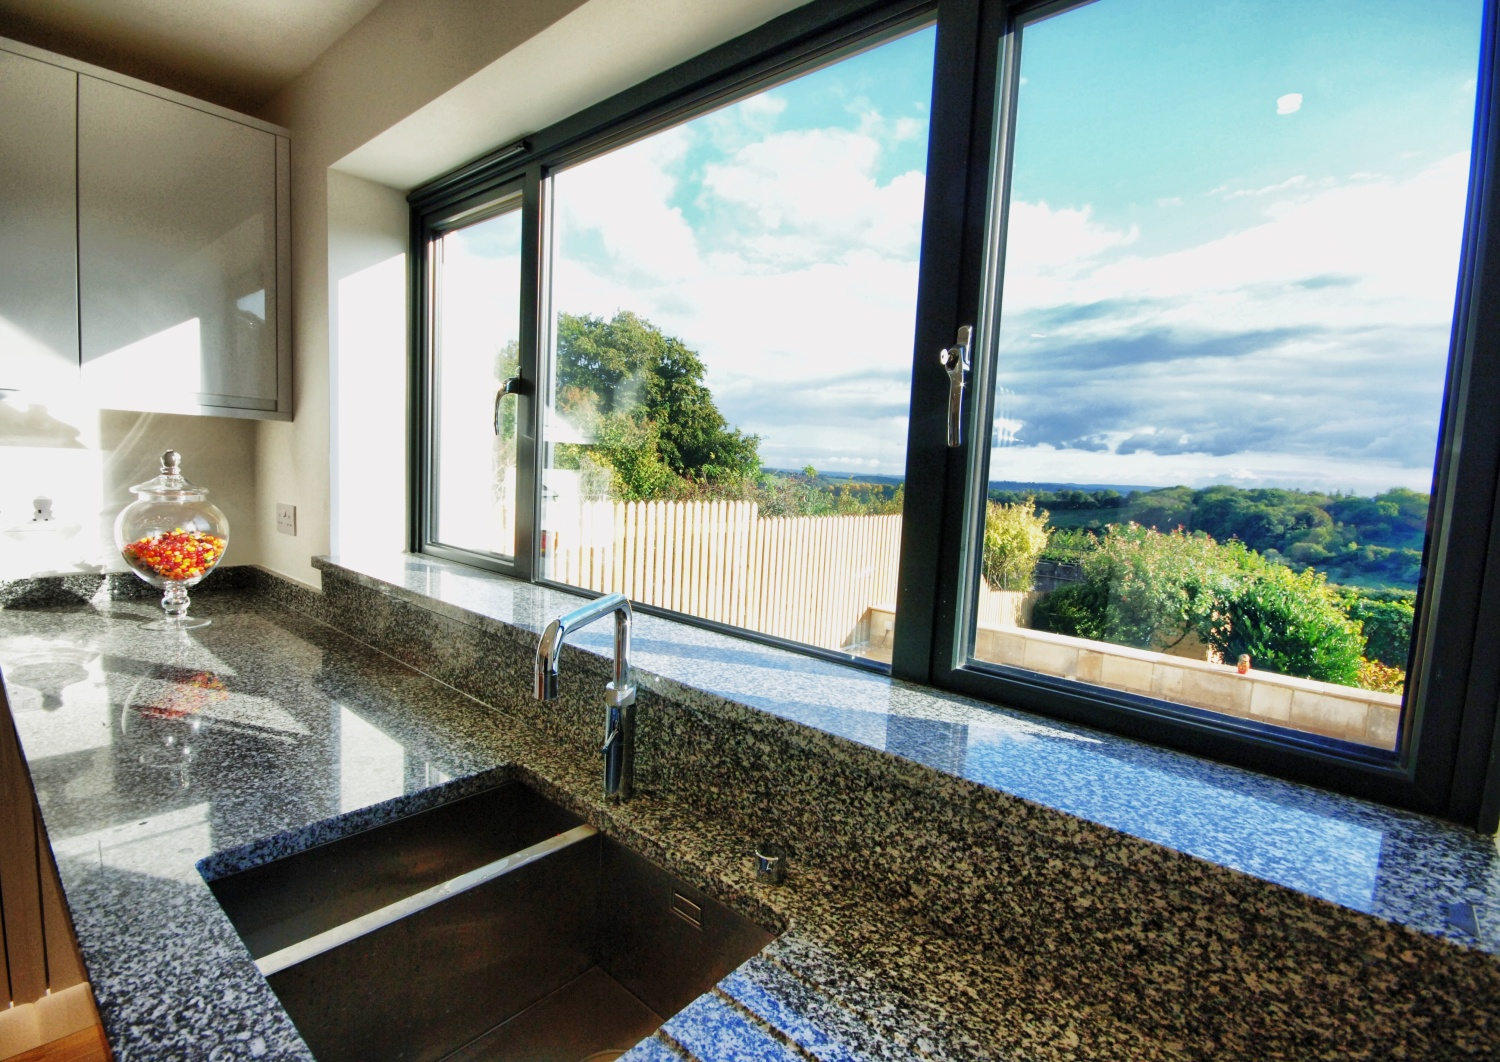 Horsecombe Brow Bath (Granite Worktop)